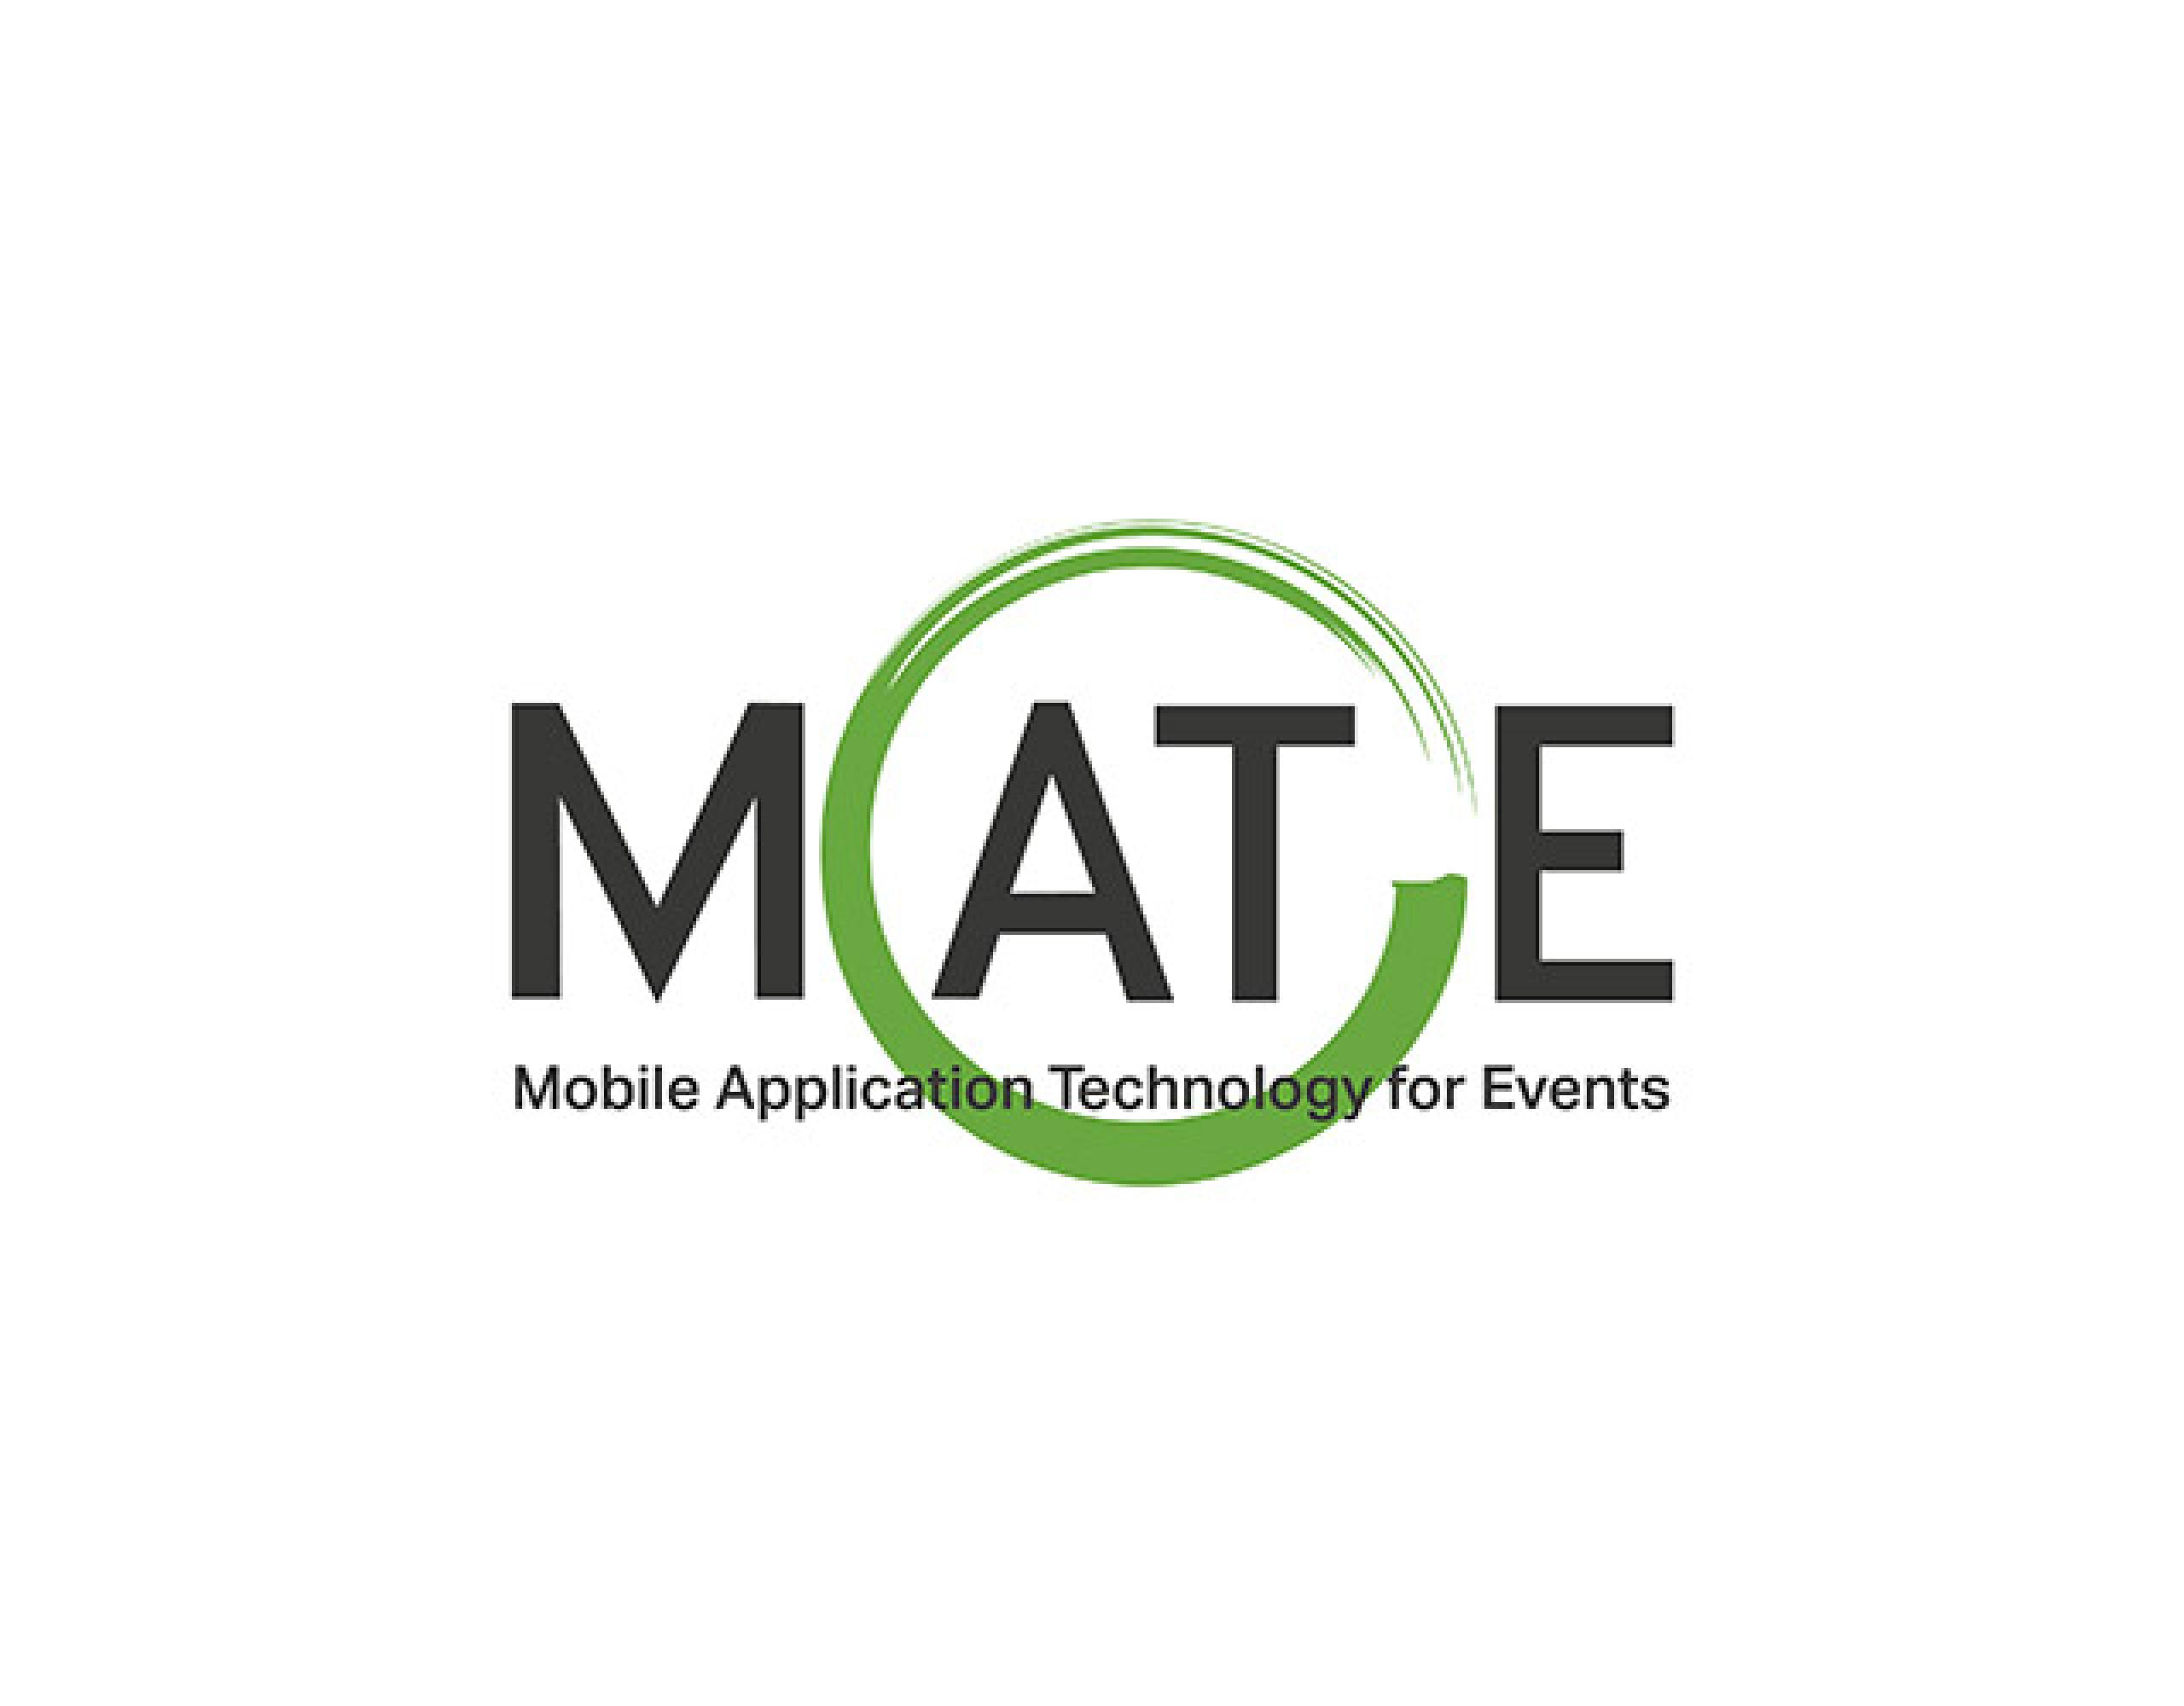 MATE-Logo-design-formlos-berlin03